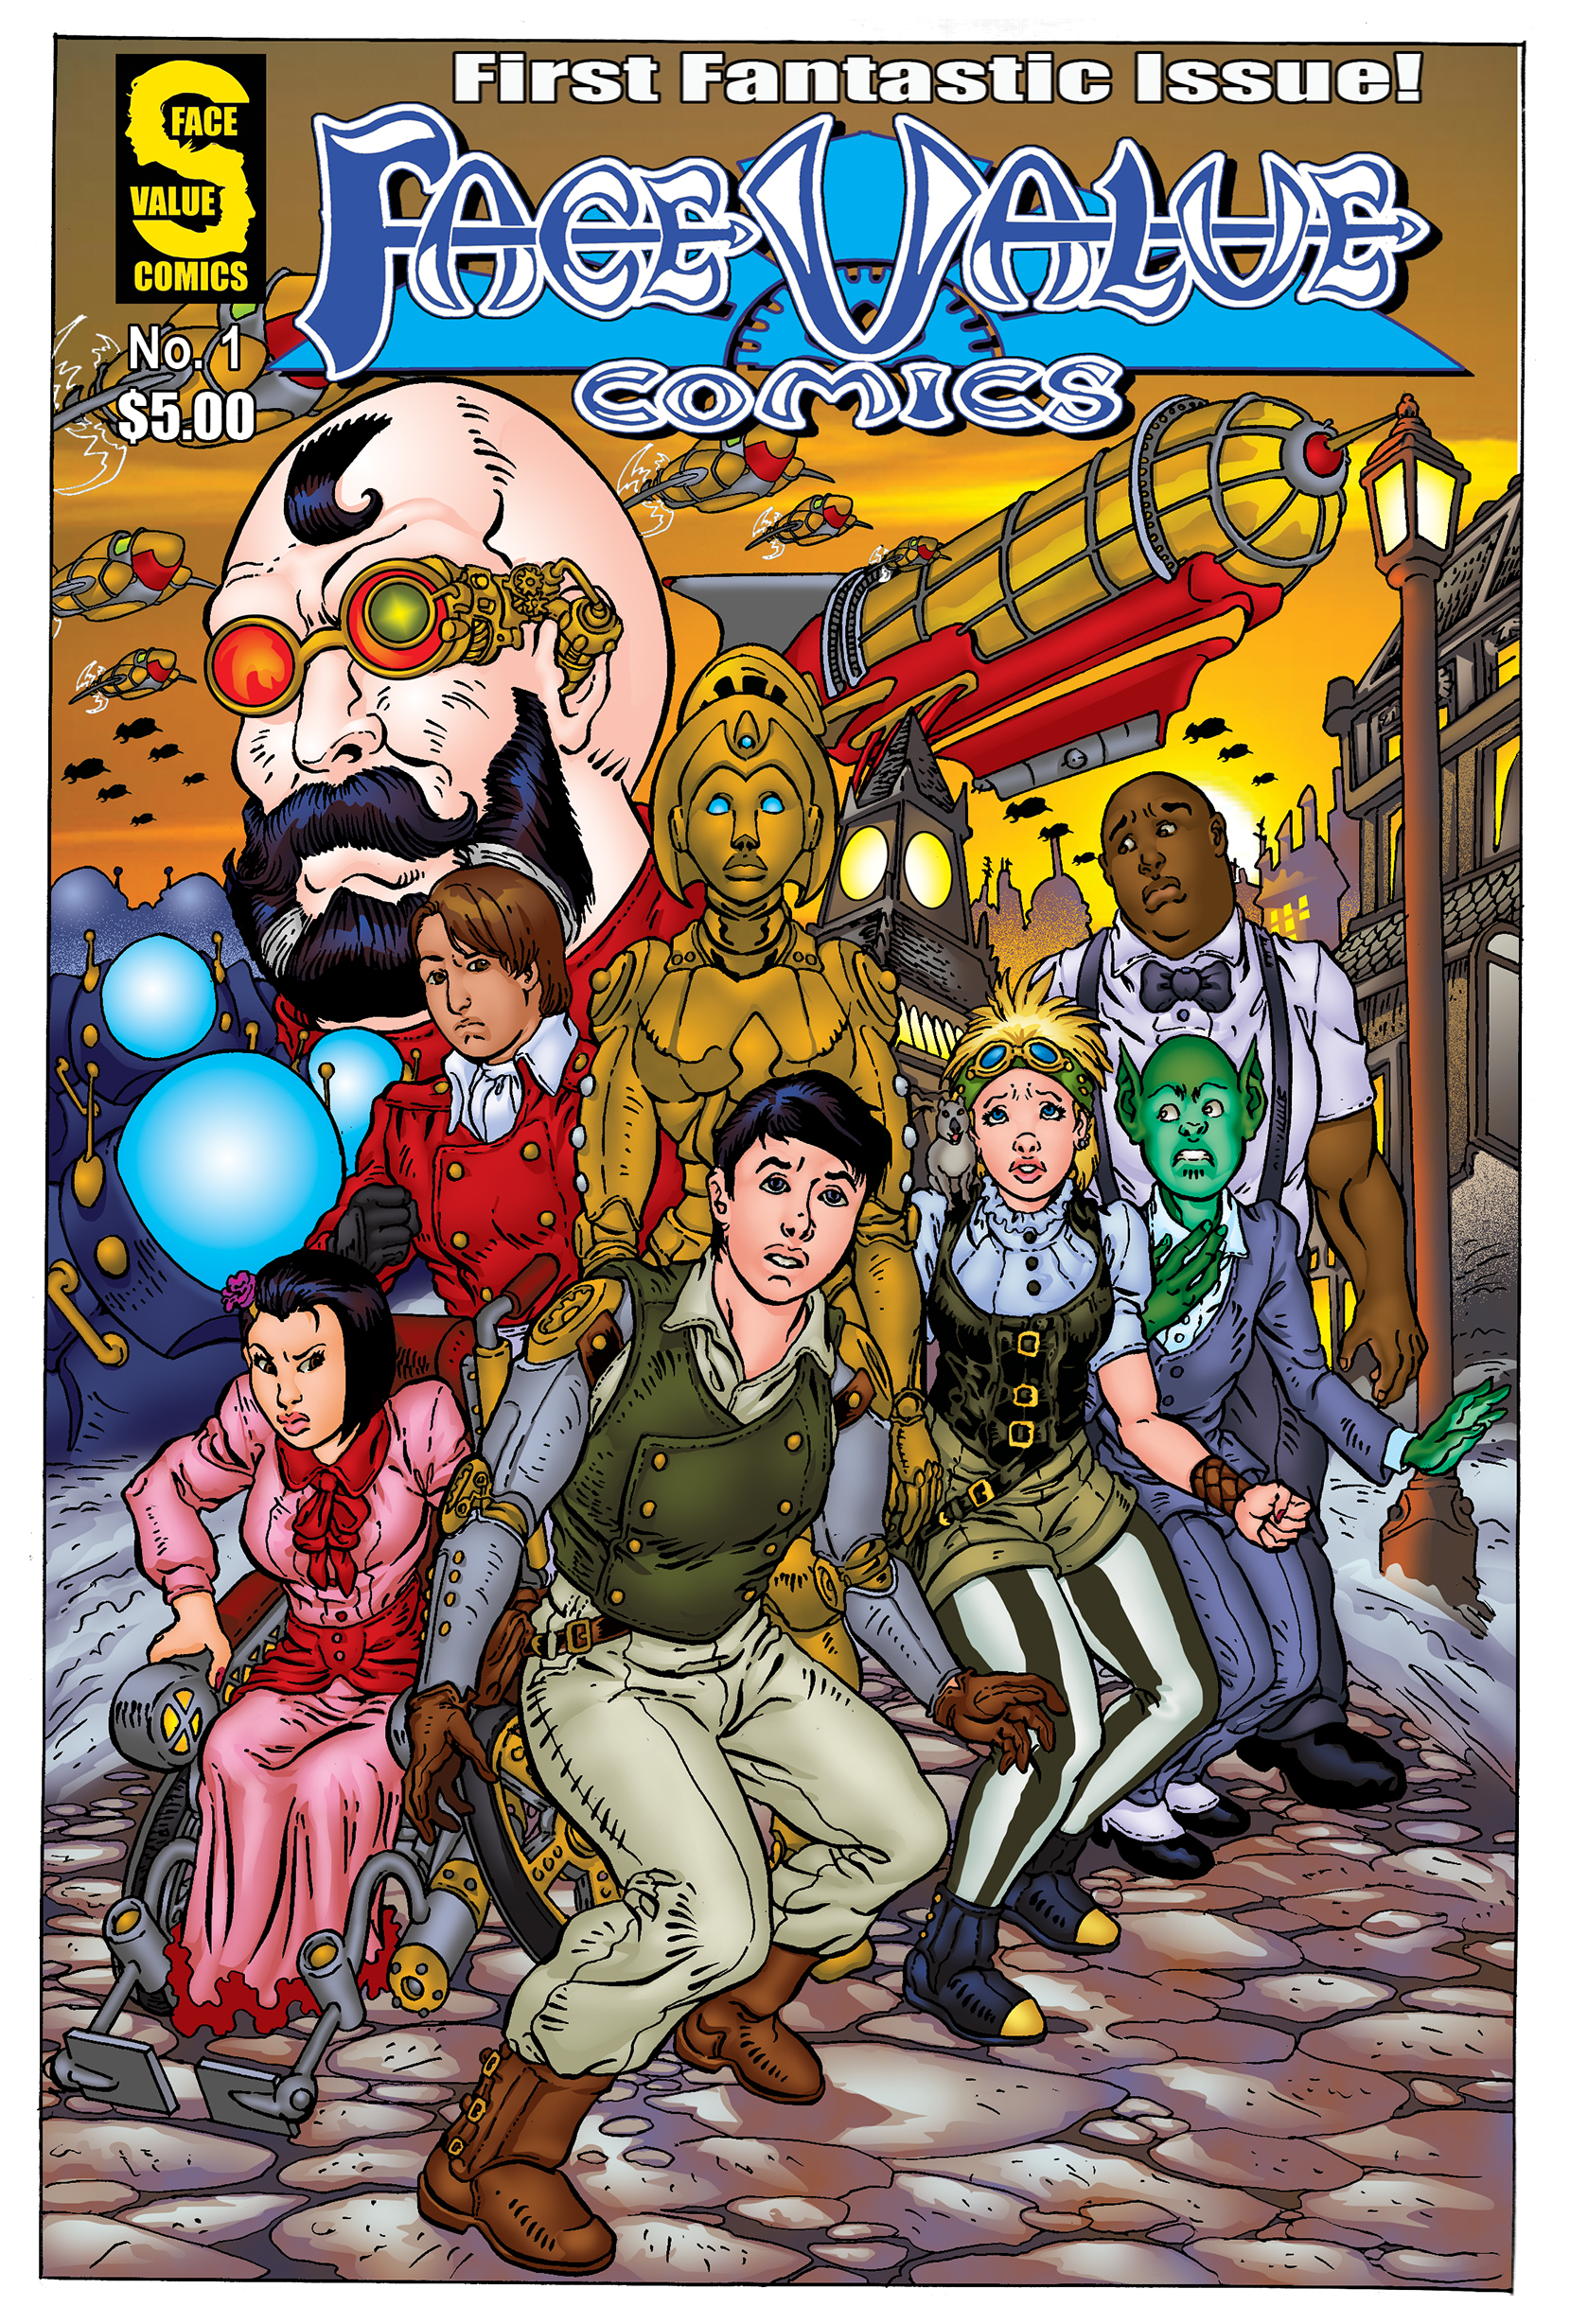 First autistic comic superhero makes a huge statement